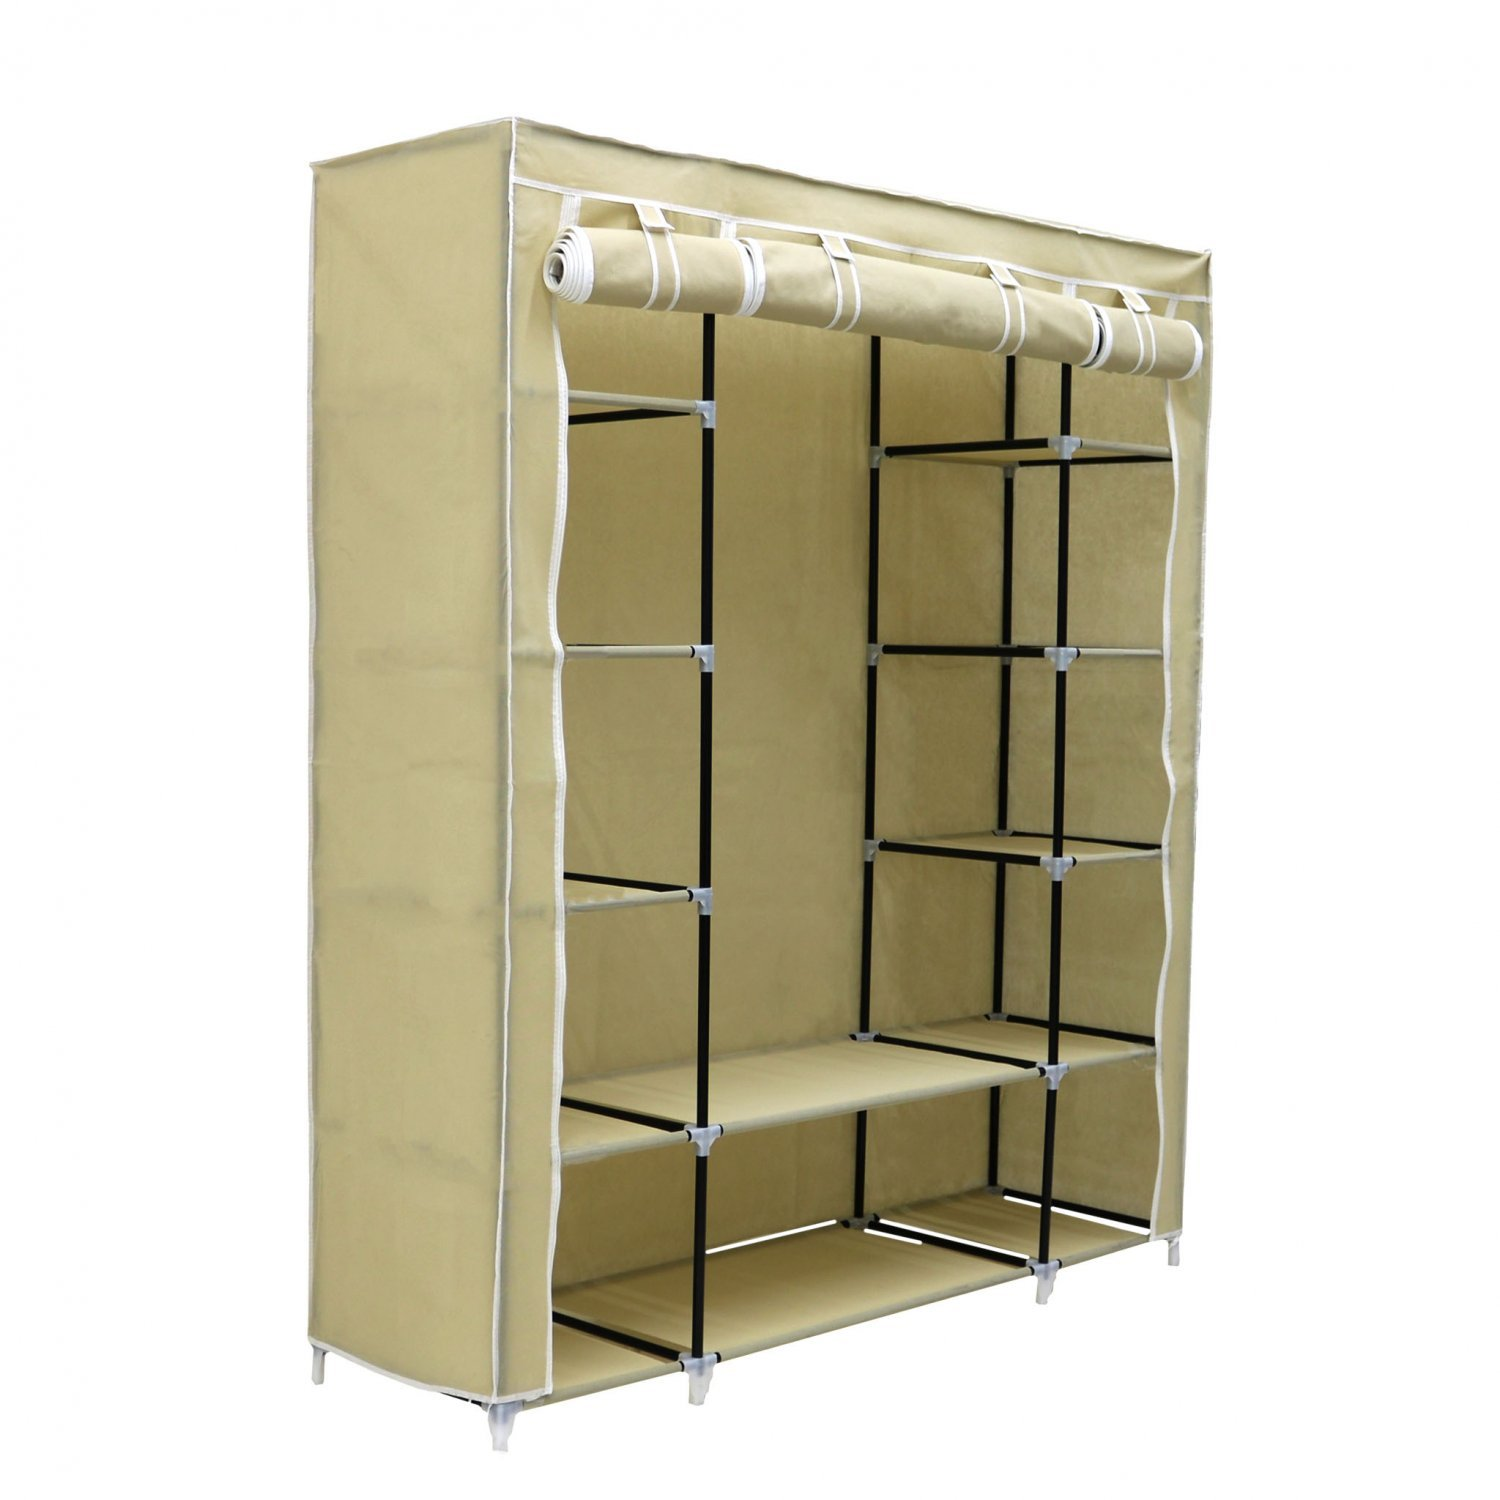 Triple Cream Canvas Wardrobe Clothes Rail Hanging Storage Closet